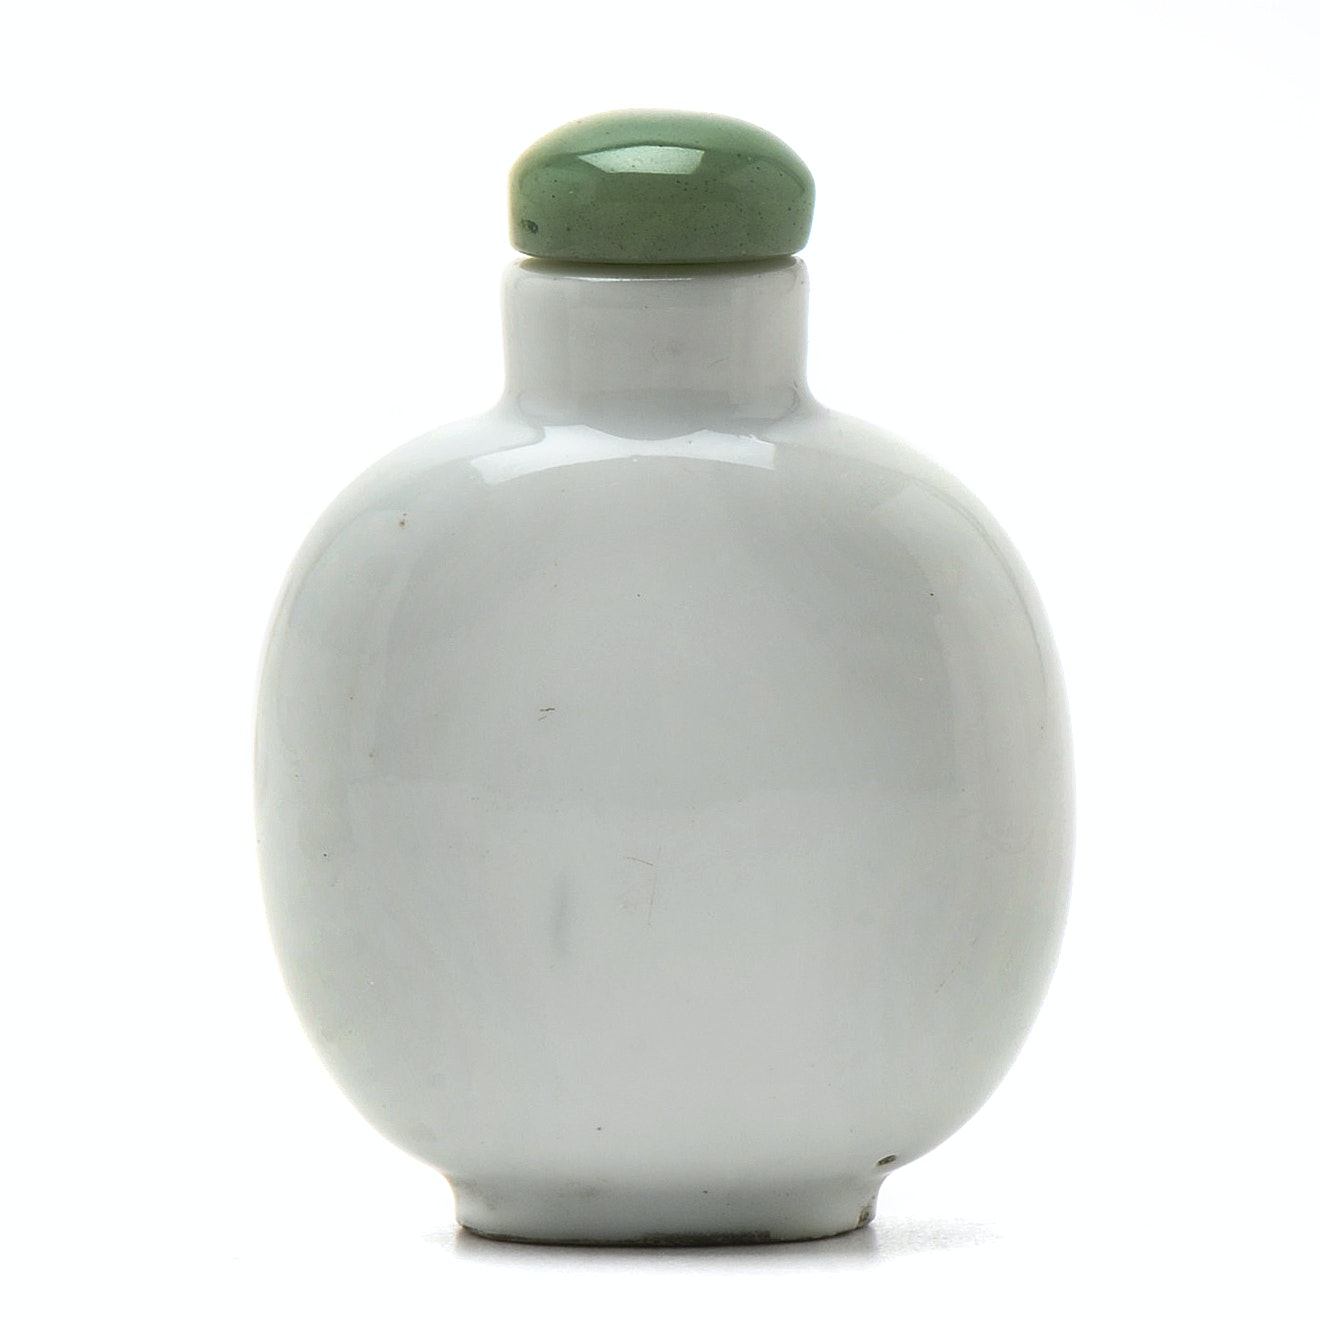 Qing Dynasty White Porcelain Snuff Bottle with Jade Stopper